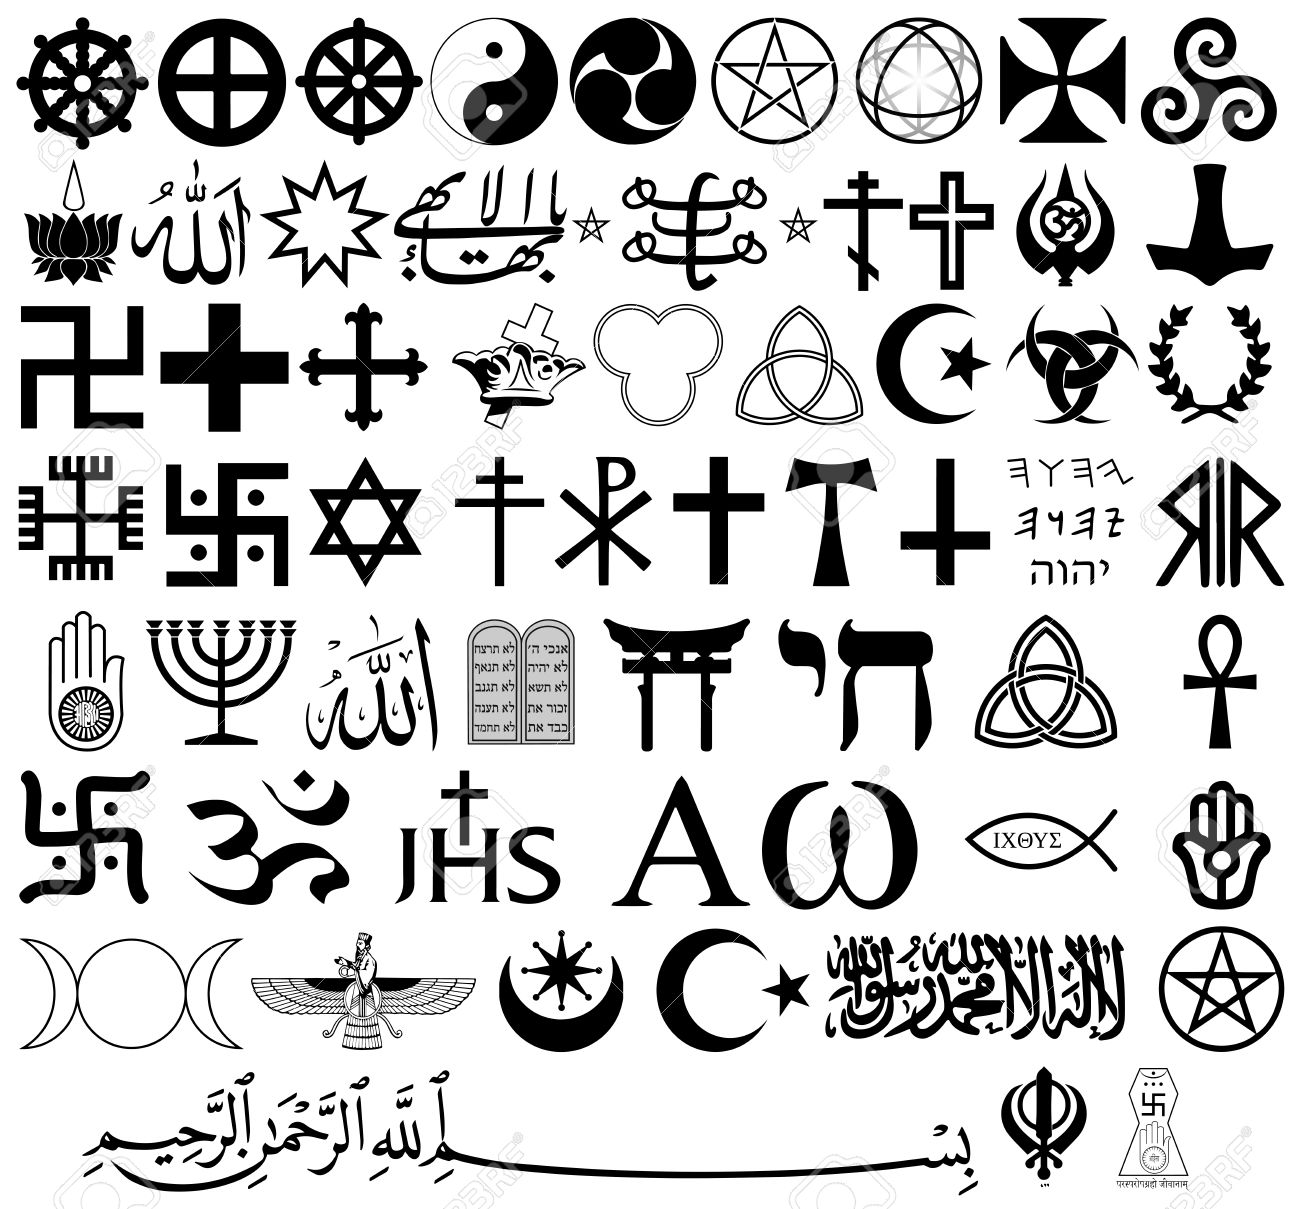 Religious Symbols From The Top Organised Faiths Of The World - Top religions in the world